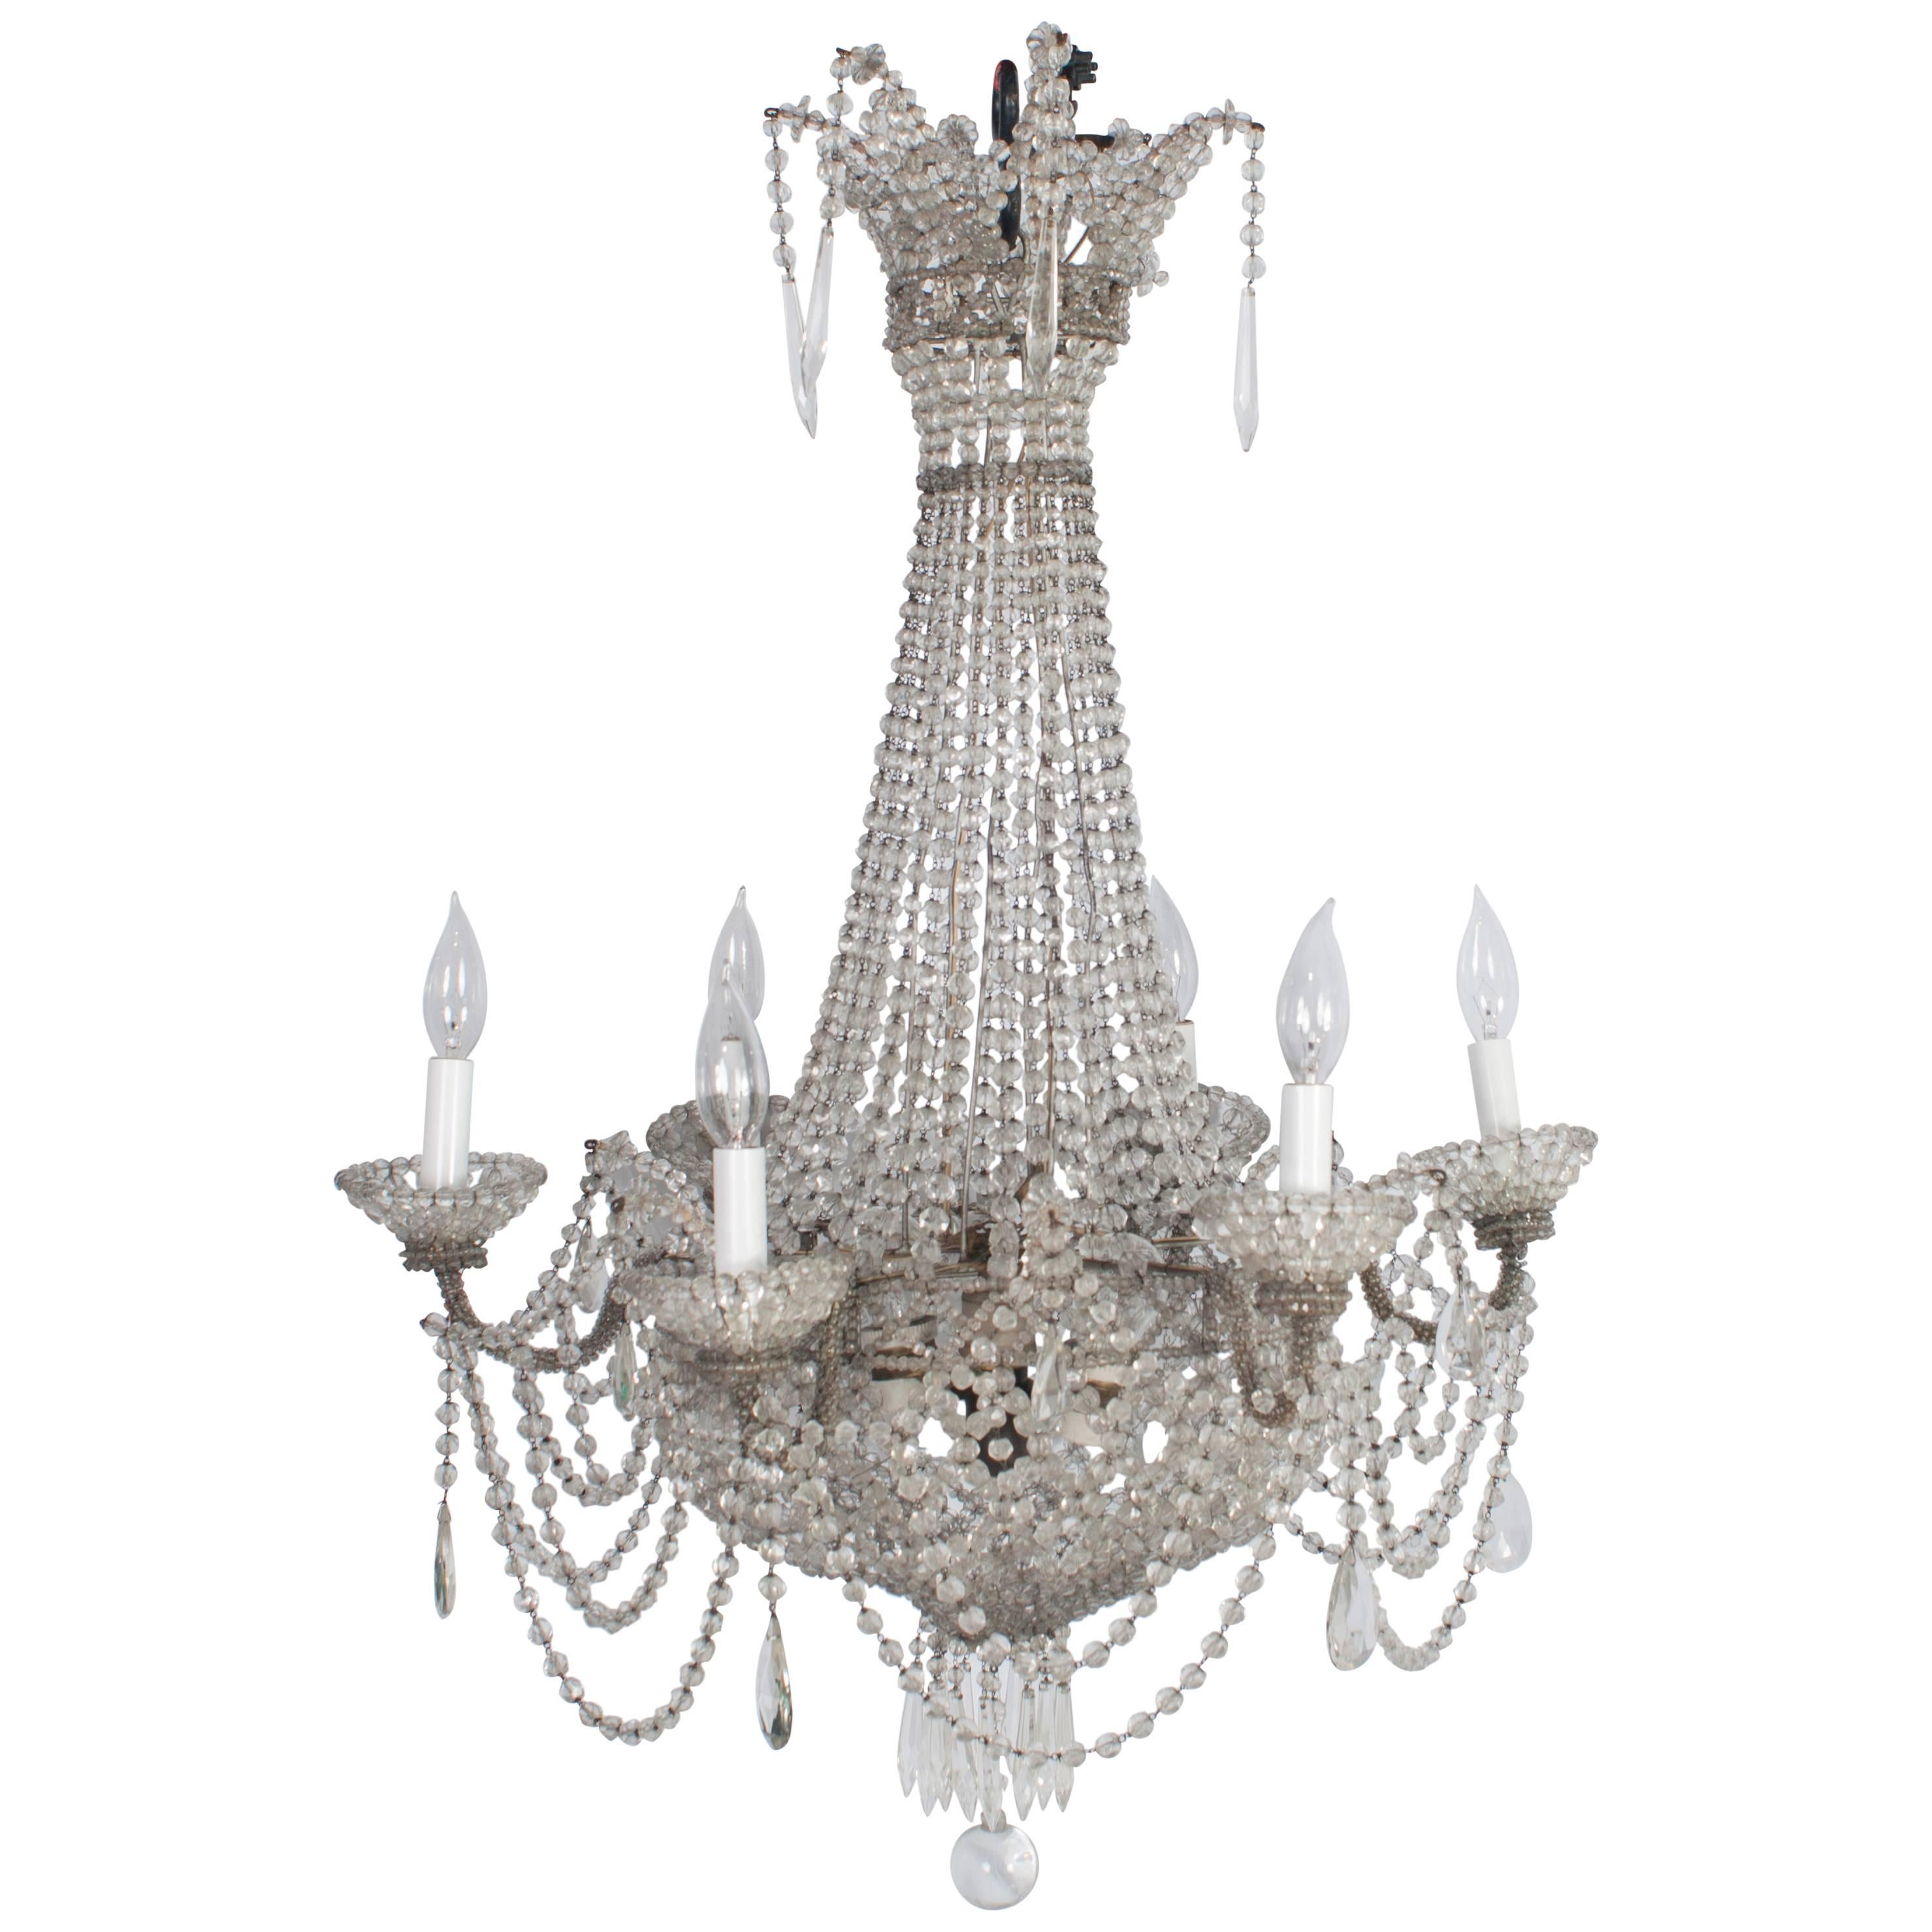 Delicate Small French Chandelier